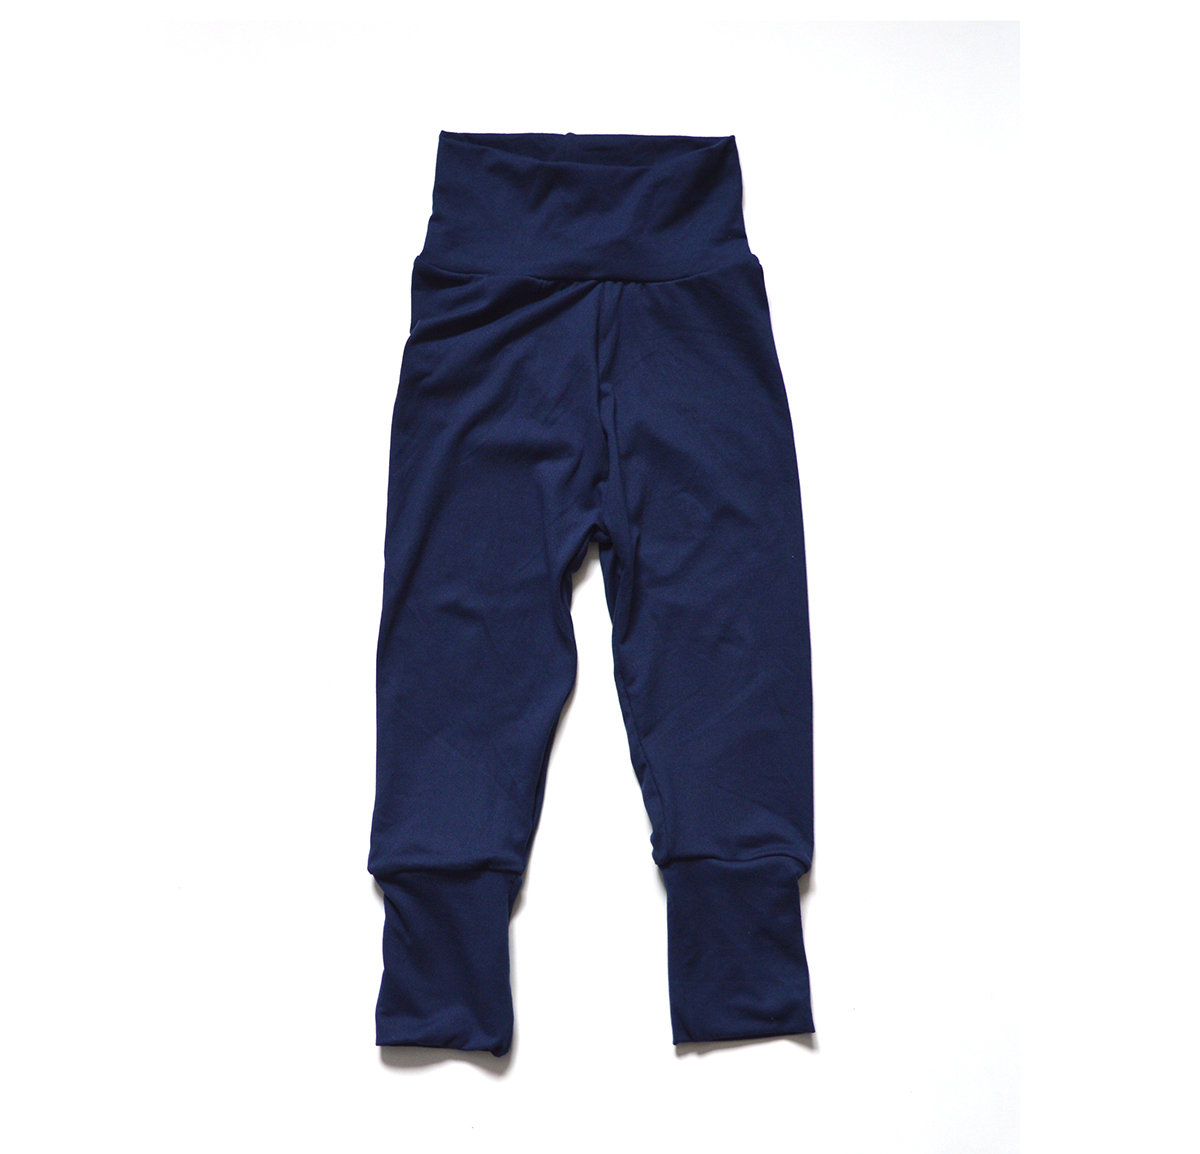 Little Sprout One-Size Pants™ Navy - Cotton